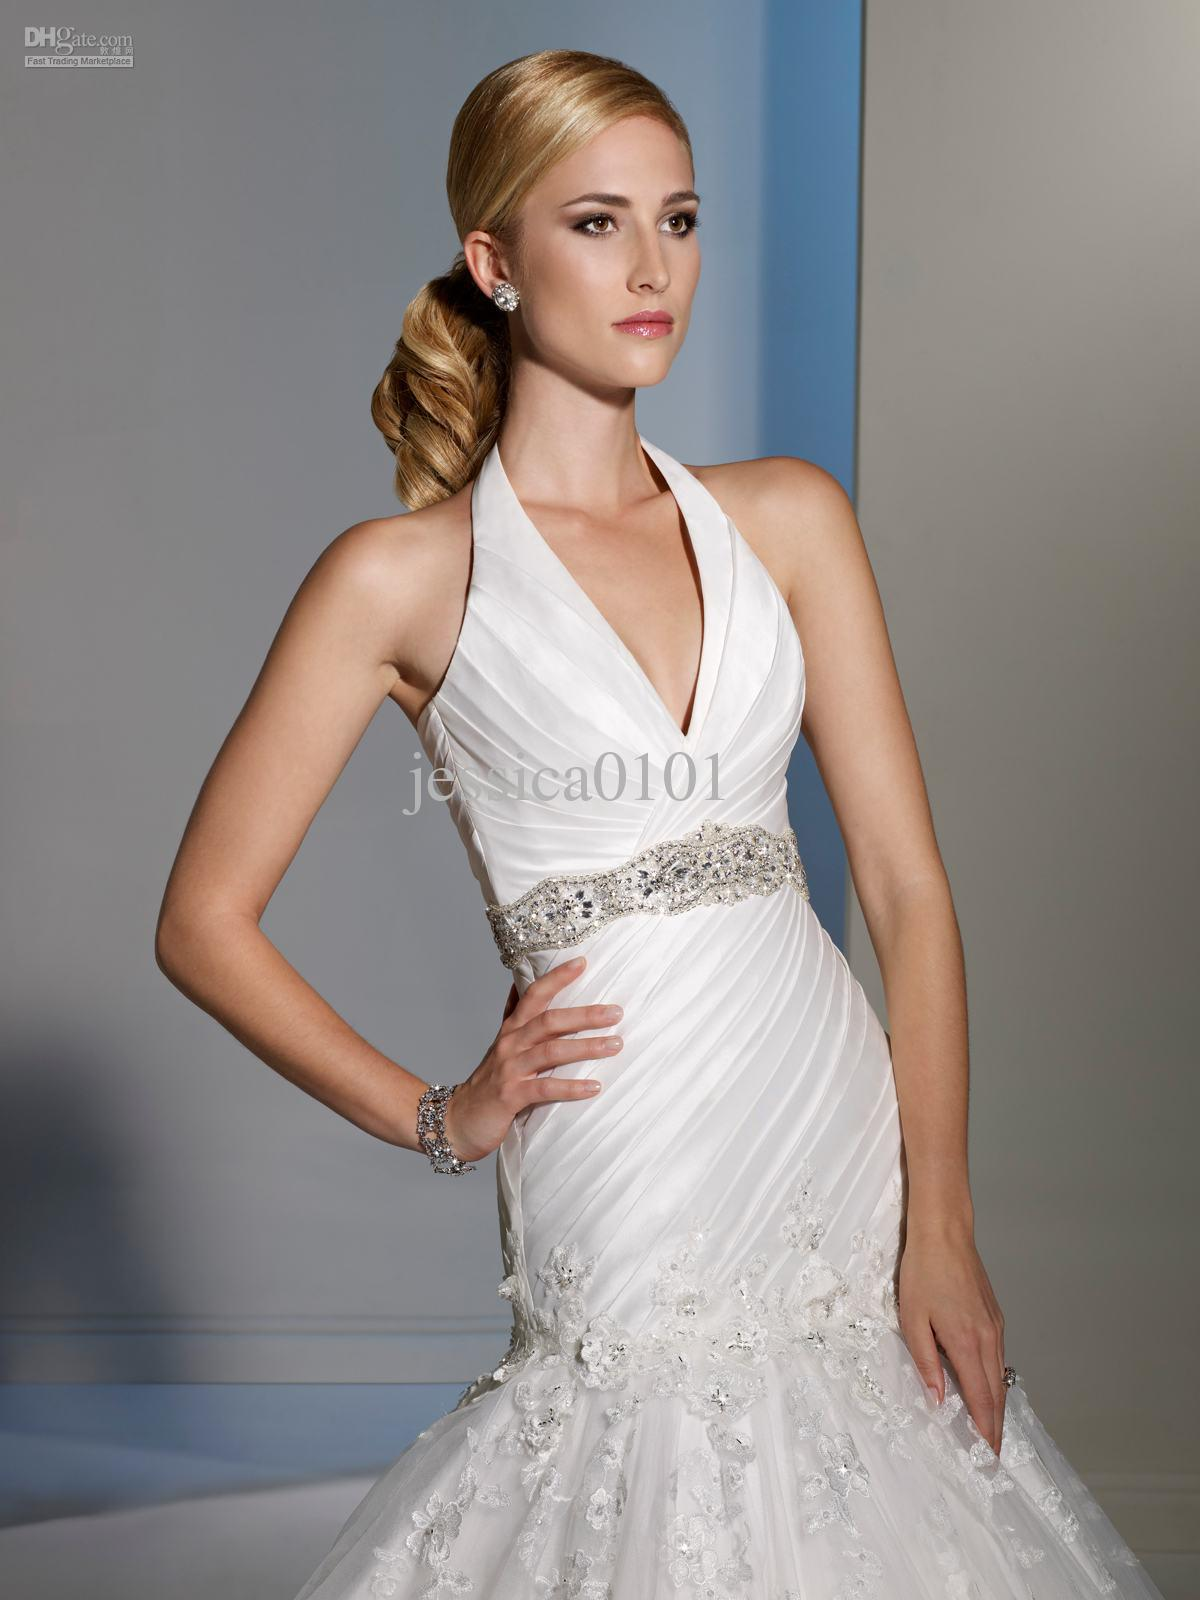 Mermaid style halter wedding dresses dress on sale mermaid style halter wedding dresses ombrellifo Image collections